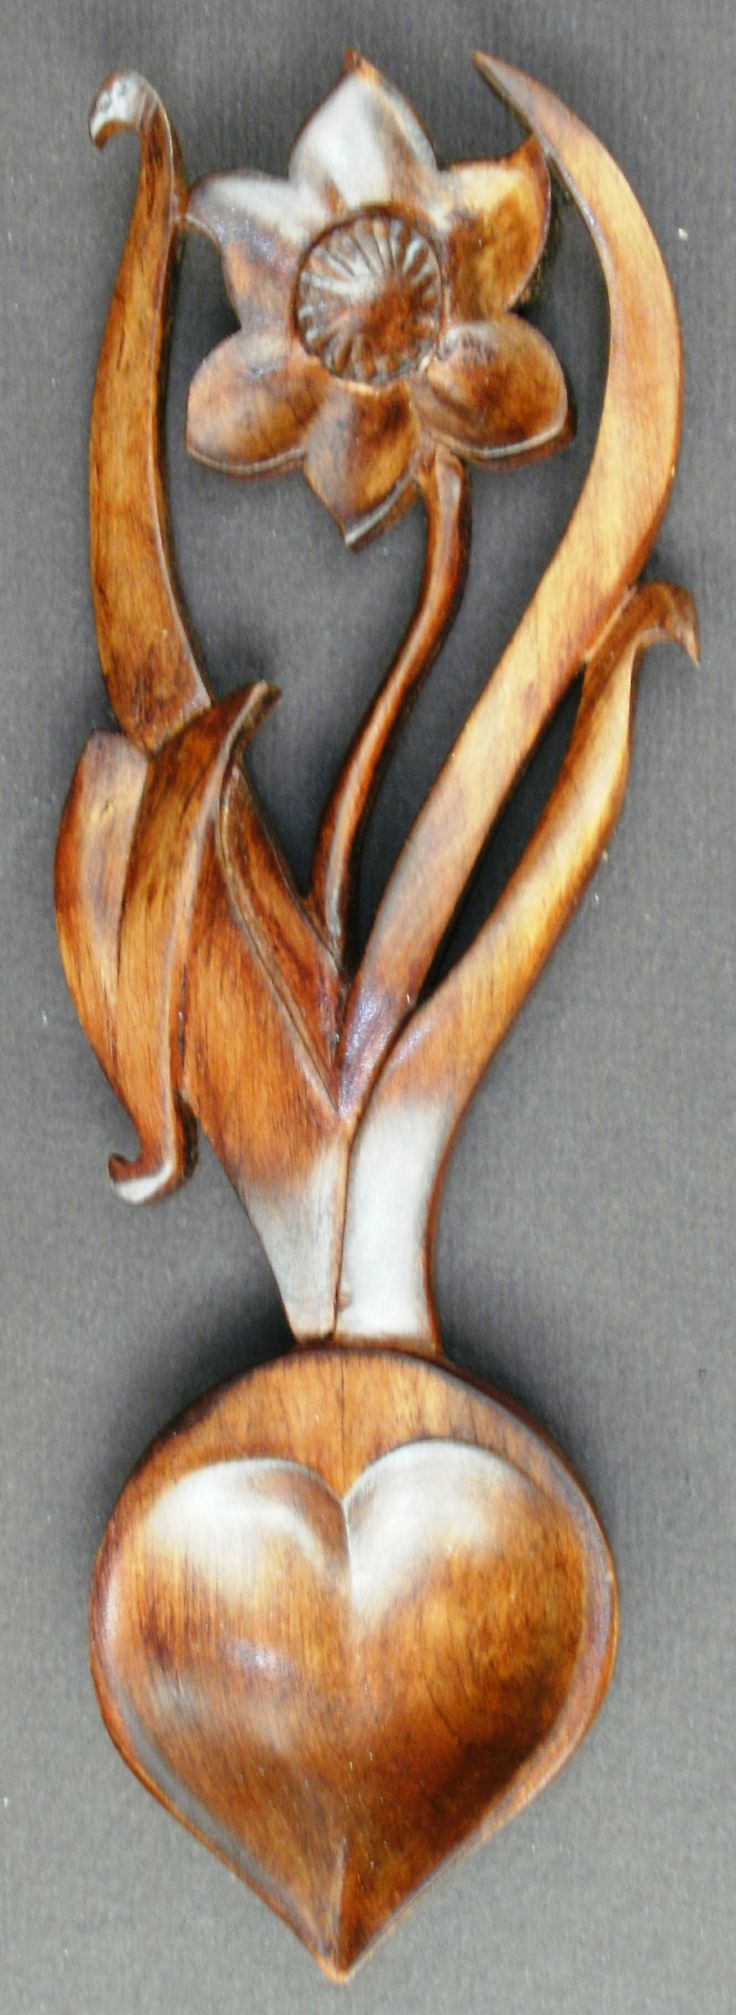 Daffodil, National Emblem of Wales #Welsh #Lovespoons